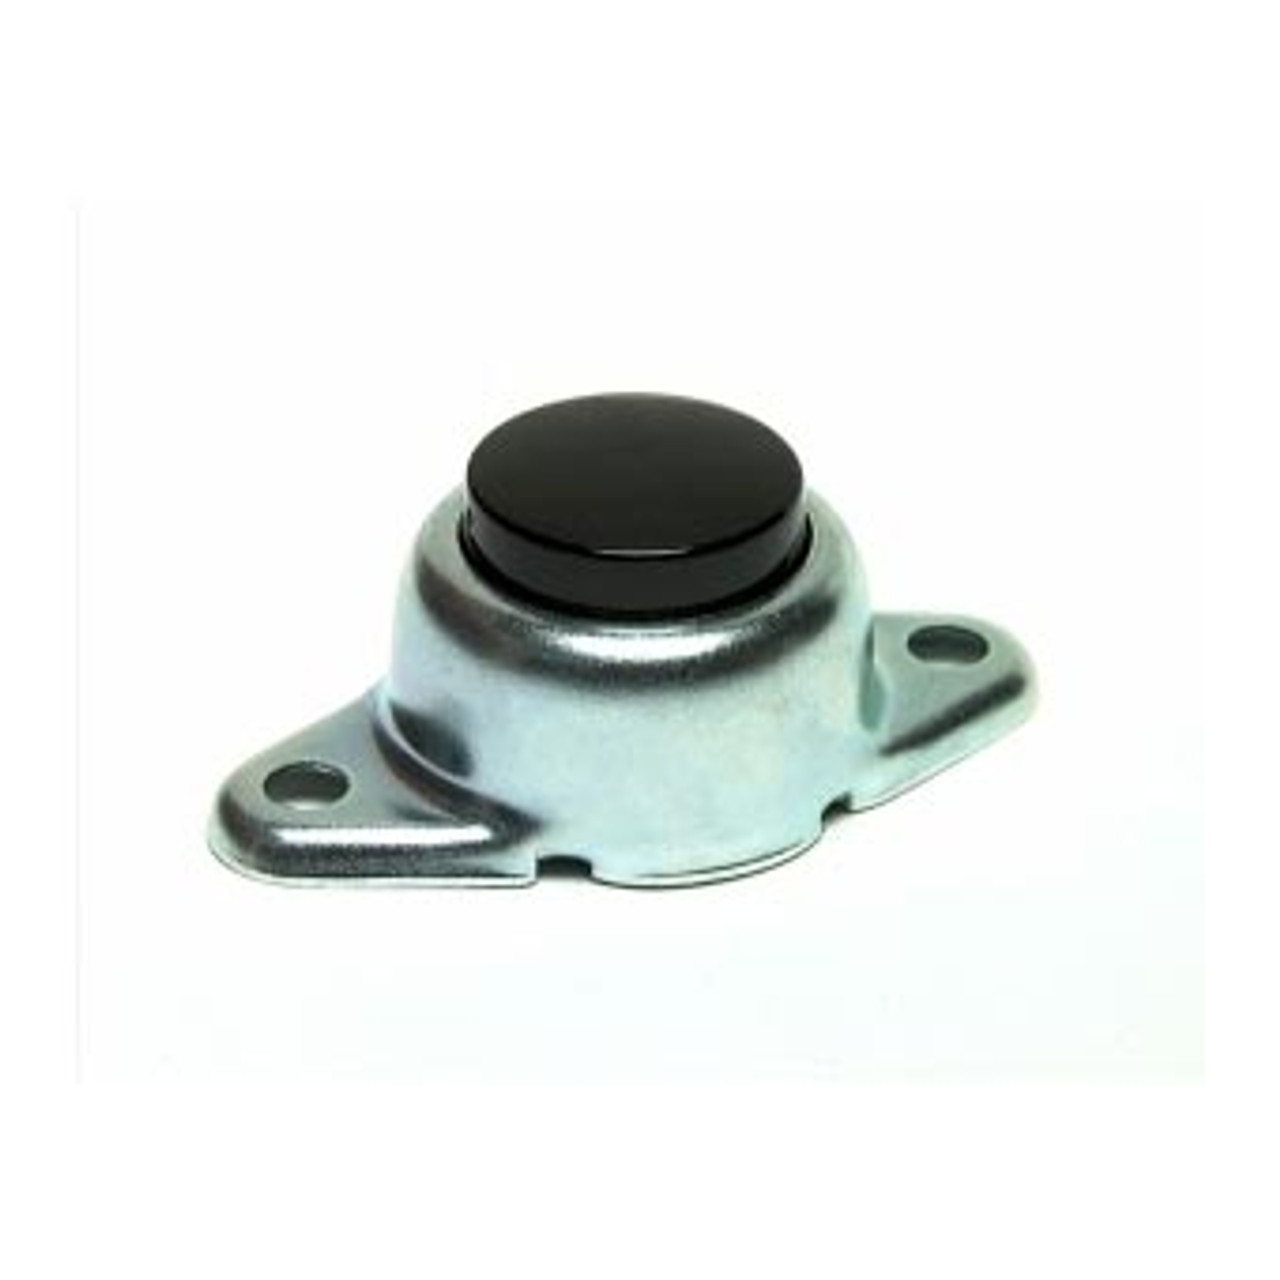 SWITCH HORN BUTTON Cole Hersee